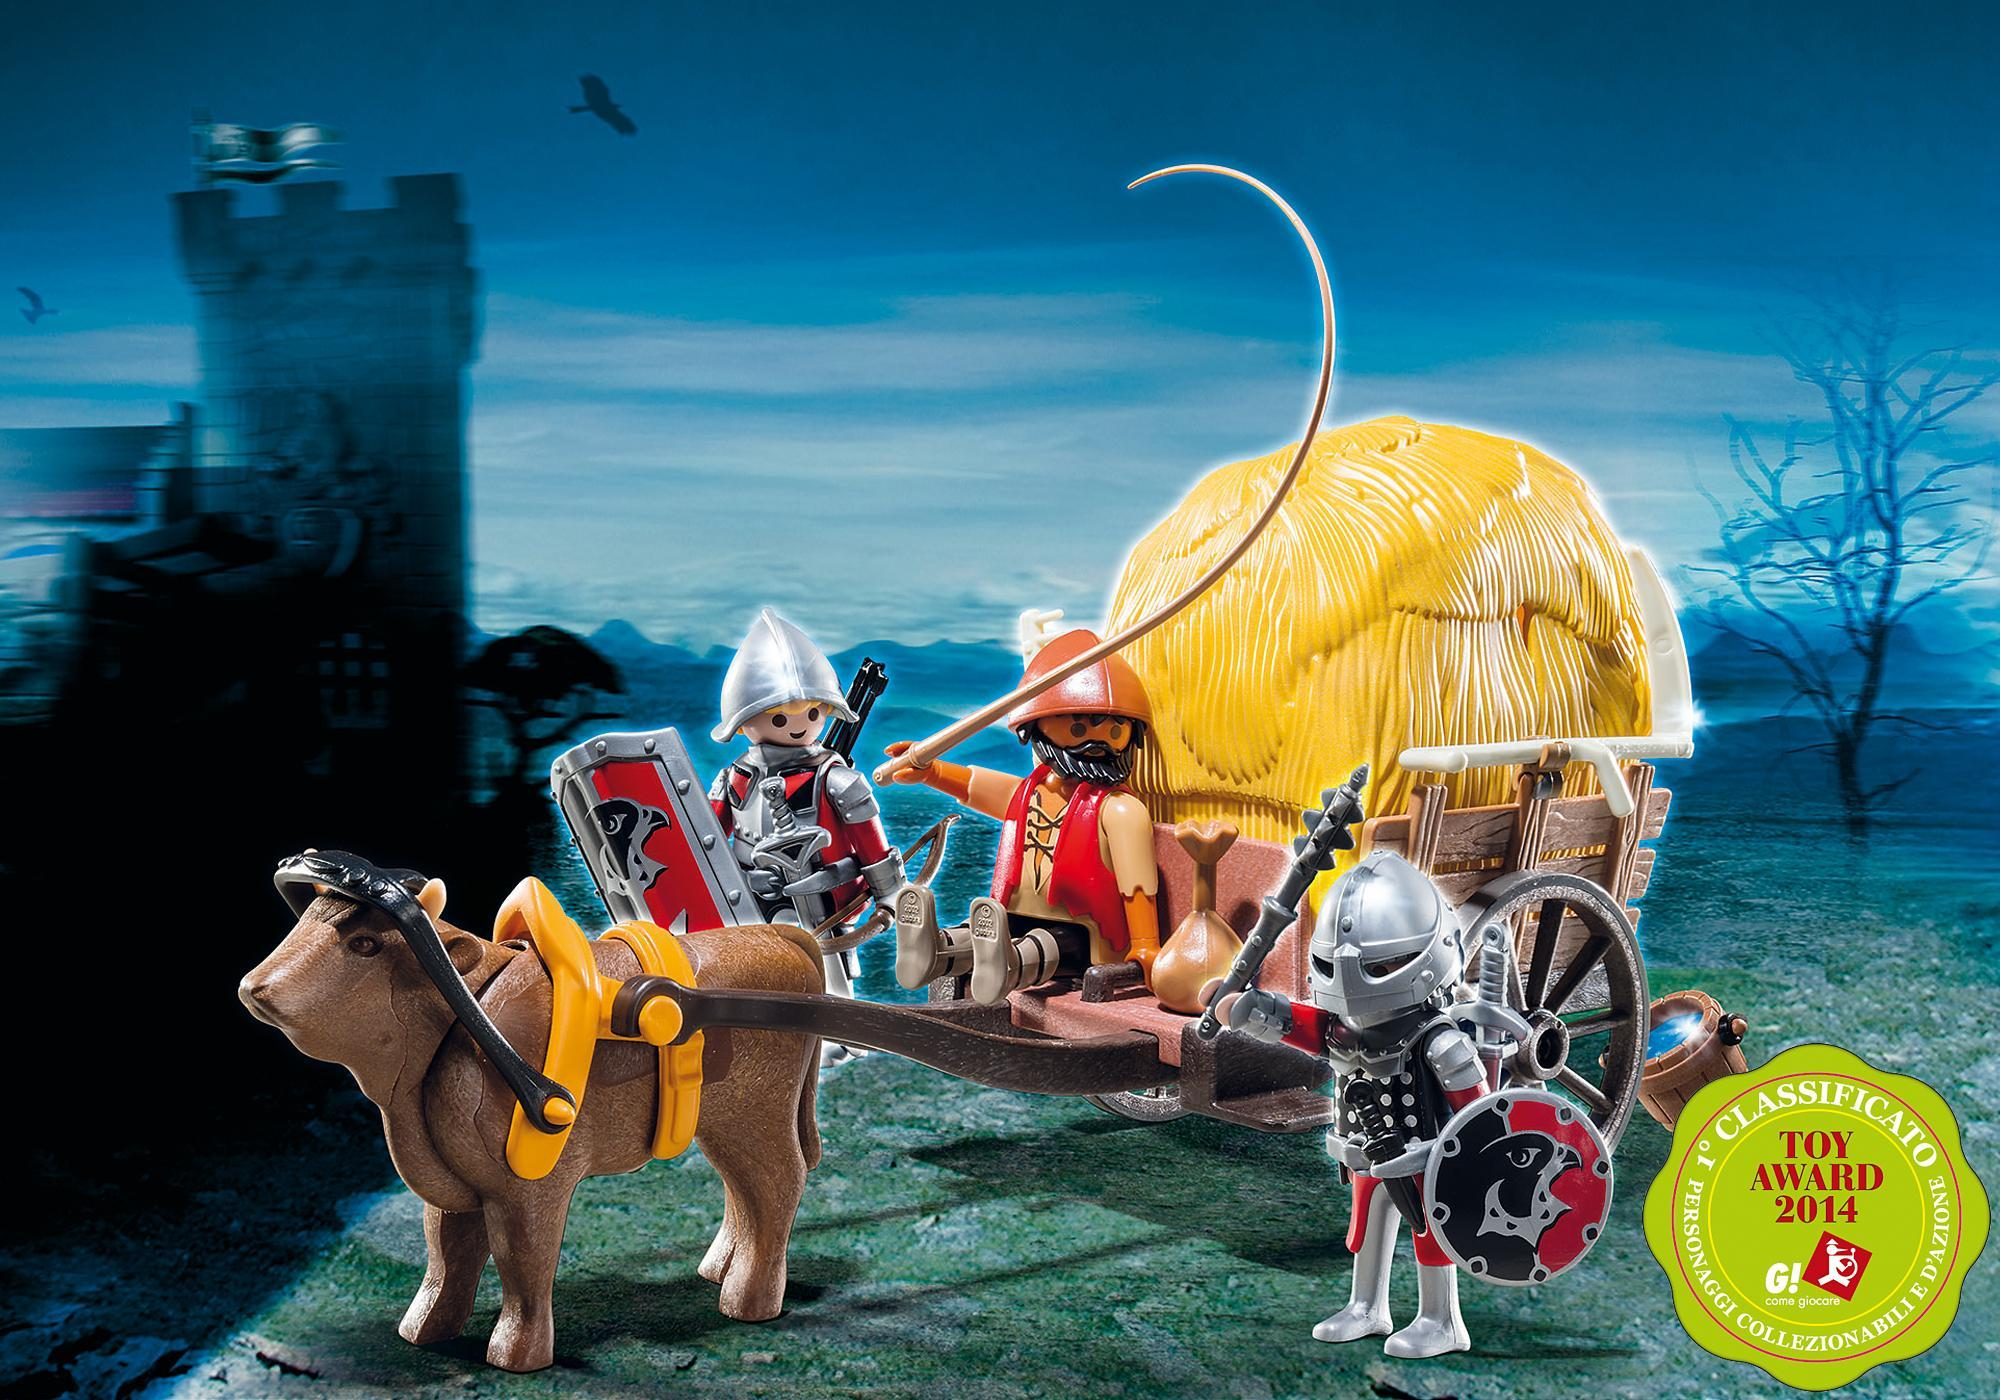 http://media.playmobil.com/i/playmobil/6005_product_detail